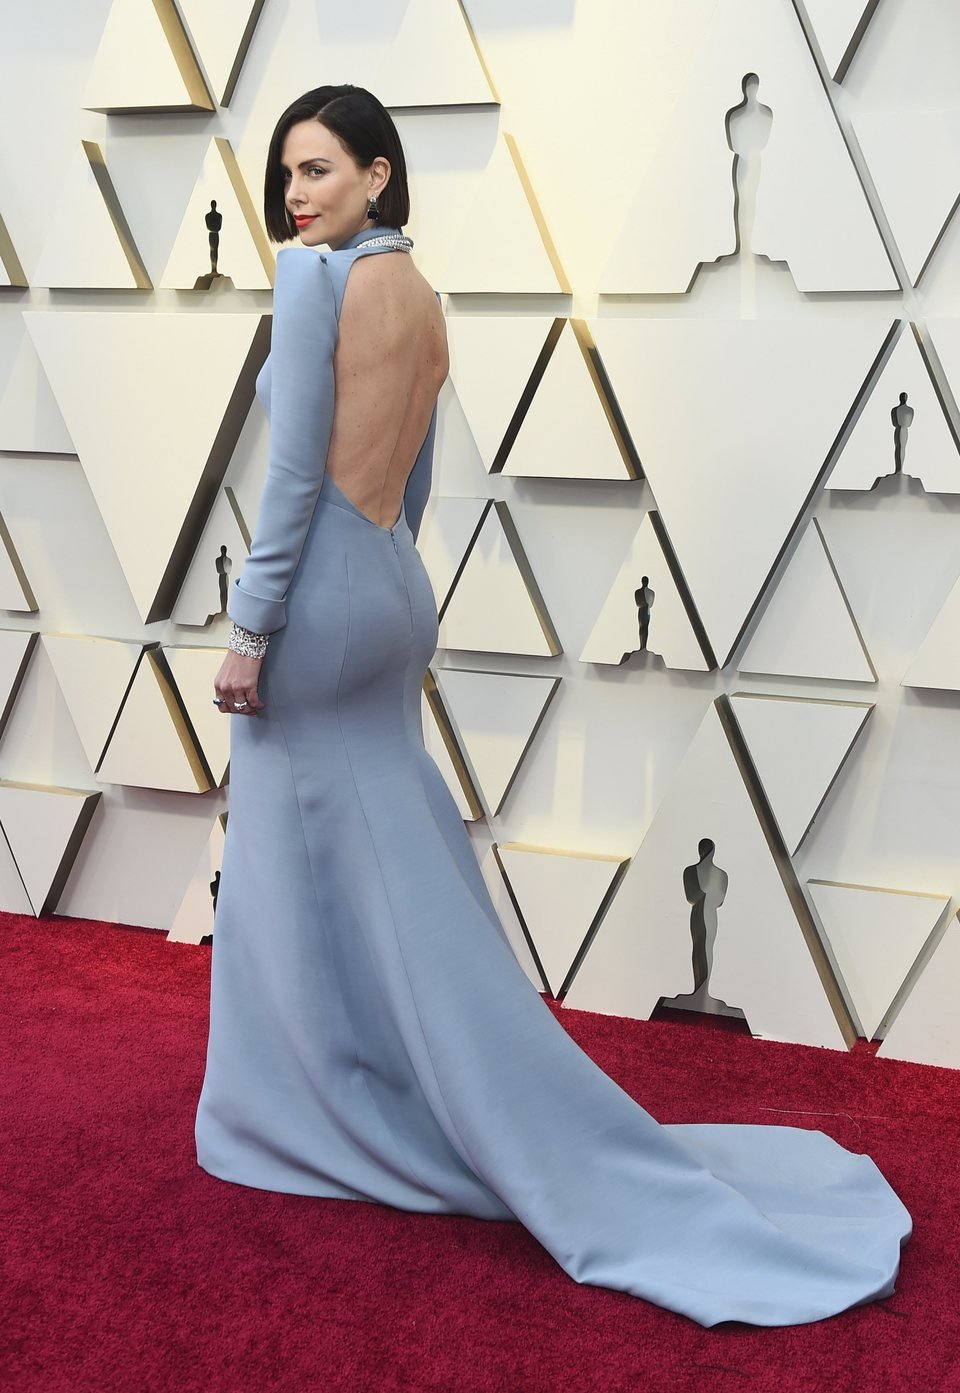 Charlize Theron on the red carpet at the Oscars 2019